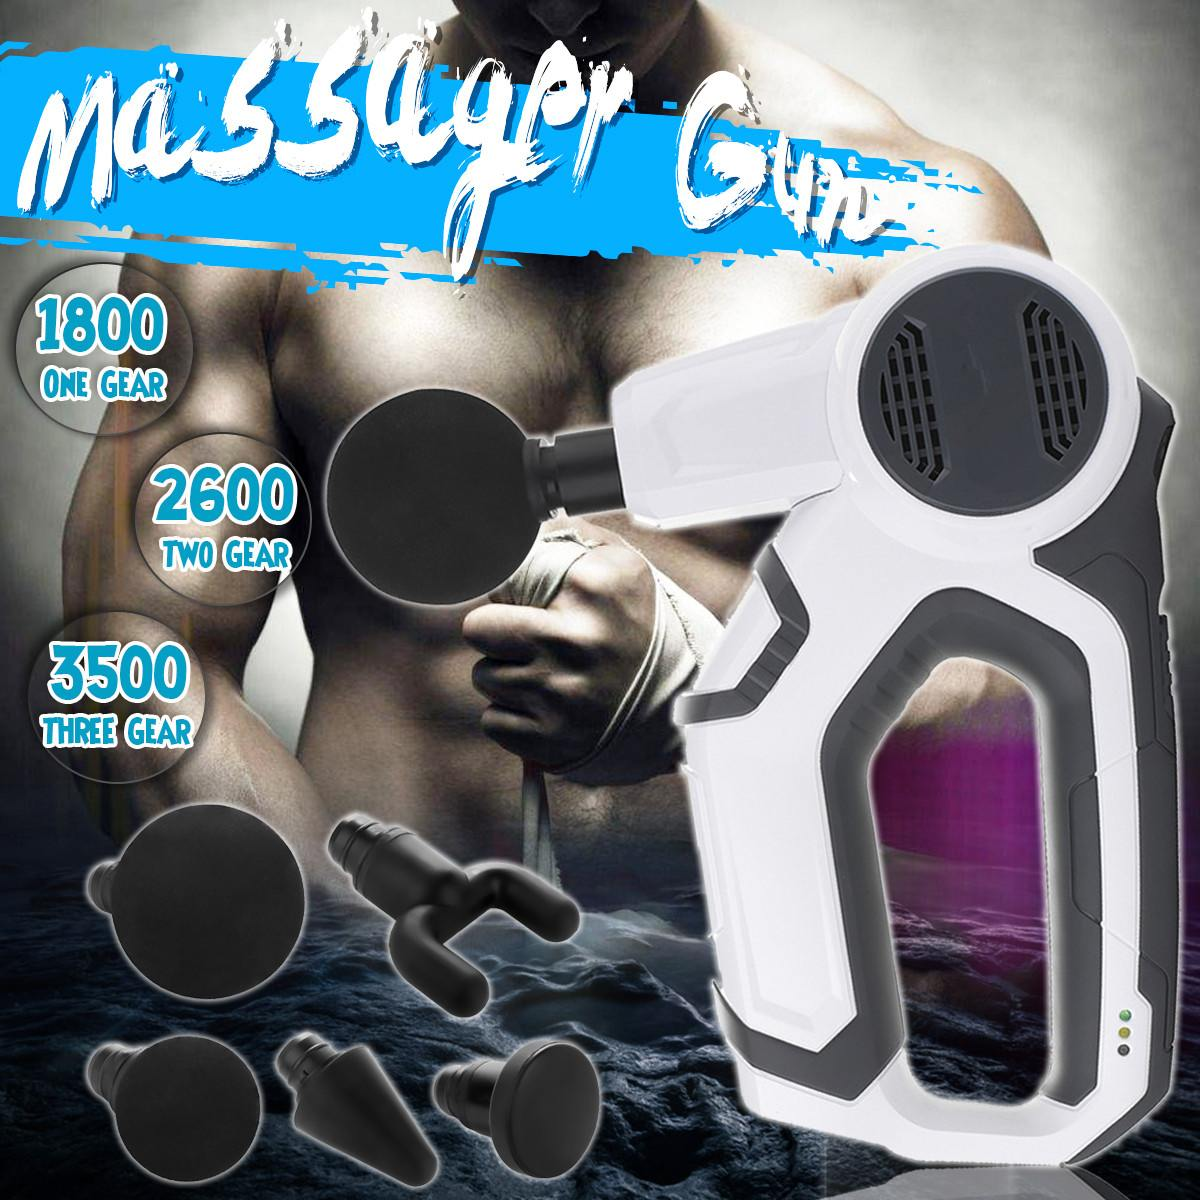 Massage Guns Muscle Massager Muscle Pain Management after Training Exercising Body Relaxation Slimming Shaping Pain ReliefMassage Guns Muscle Massager Muscle Pain Management after Training Exercising Body Relaxation Slimming Shaping Pain Relief